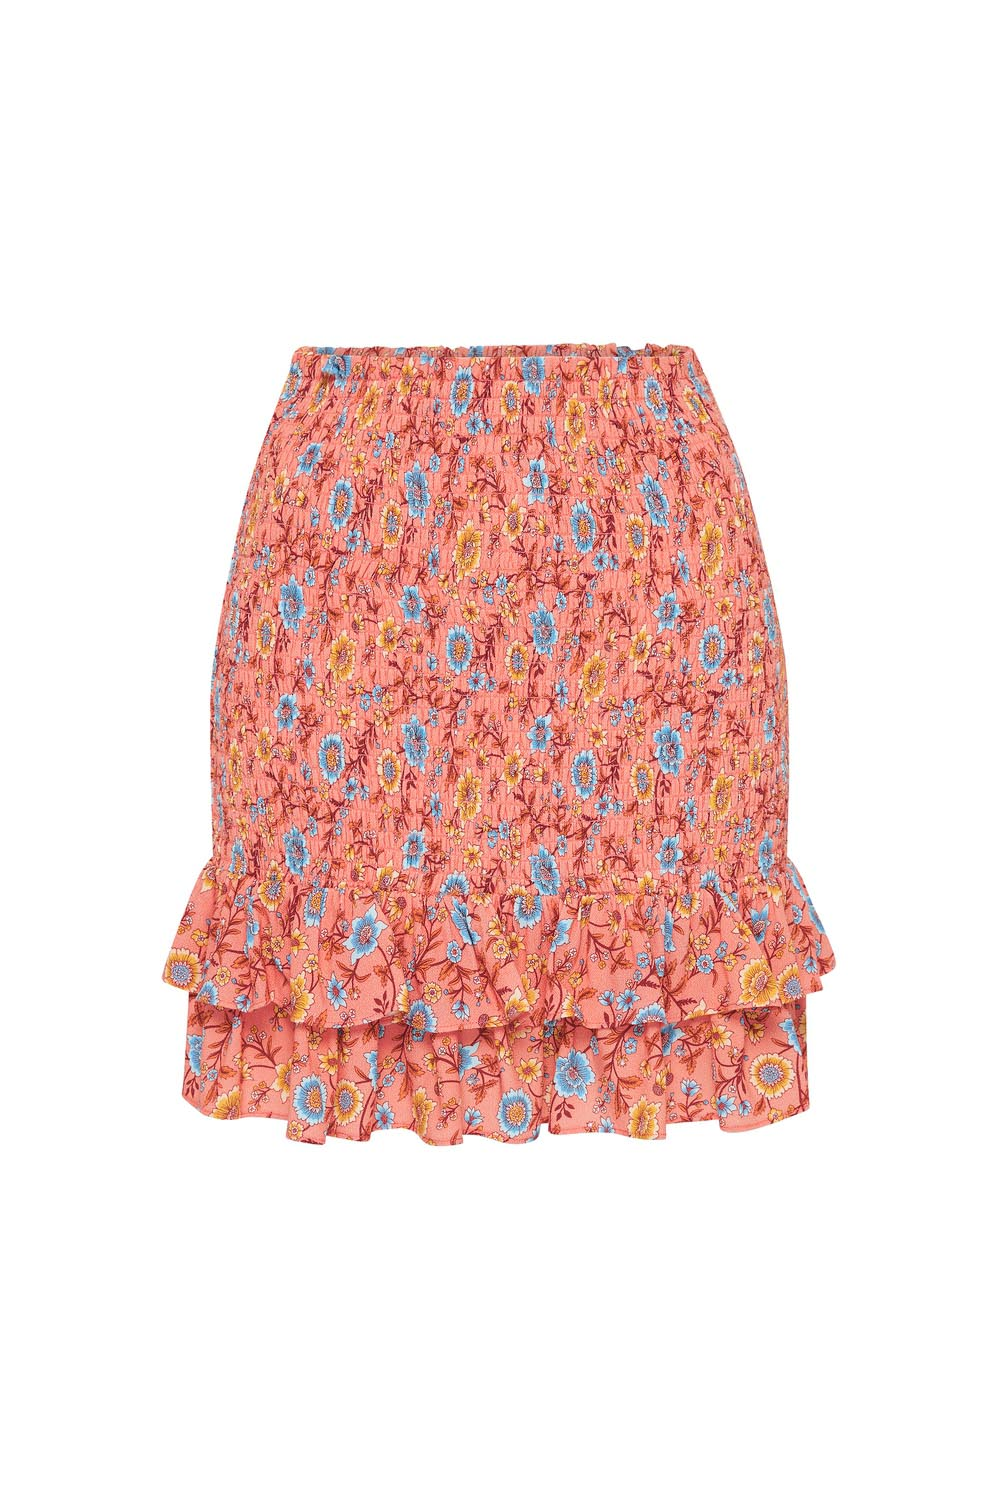 Bijoux Mini Skirt in Coral